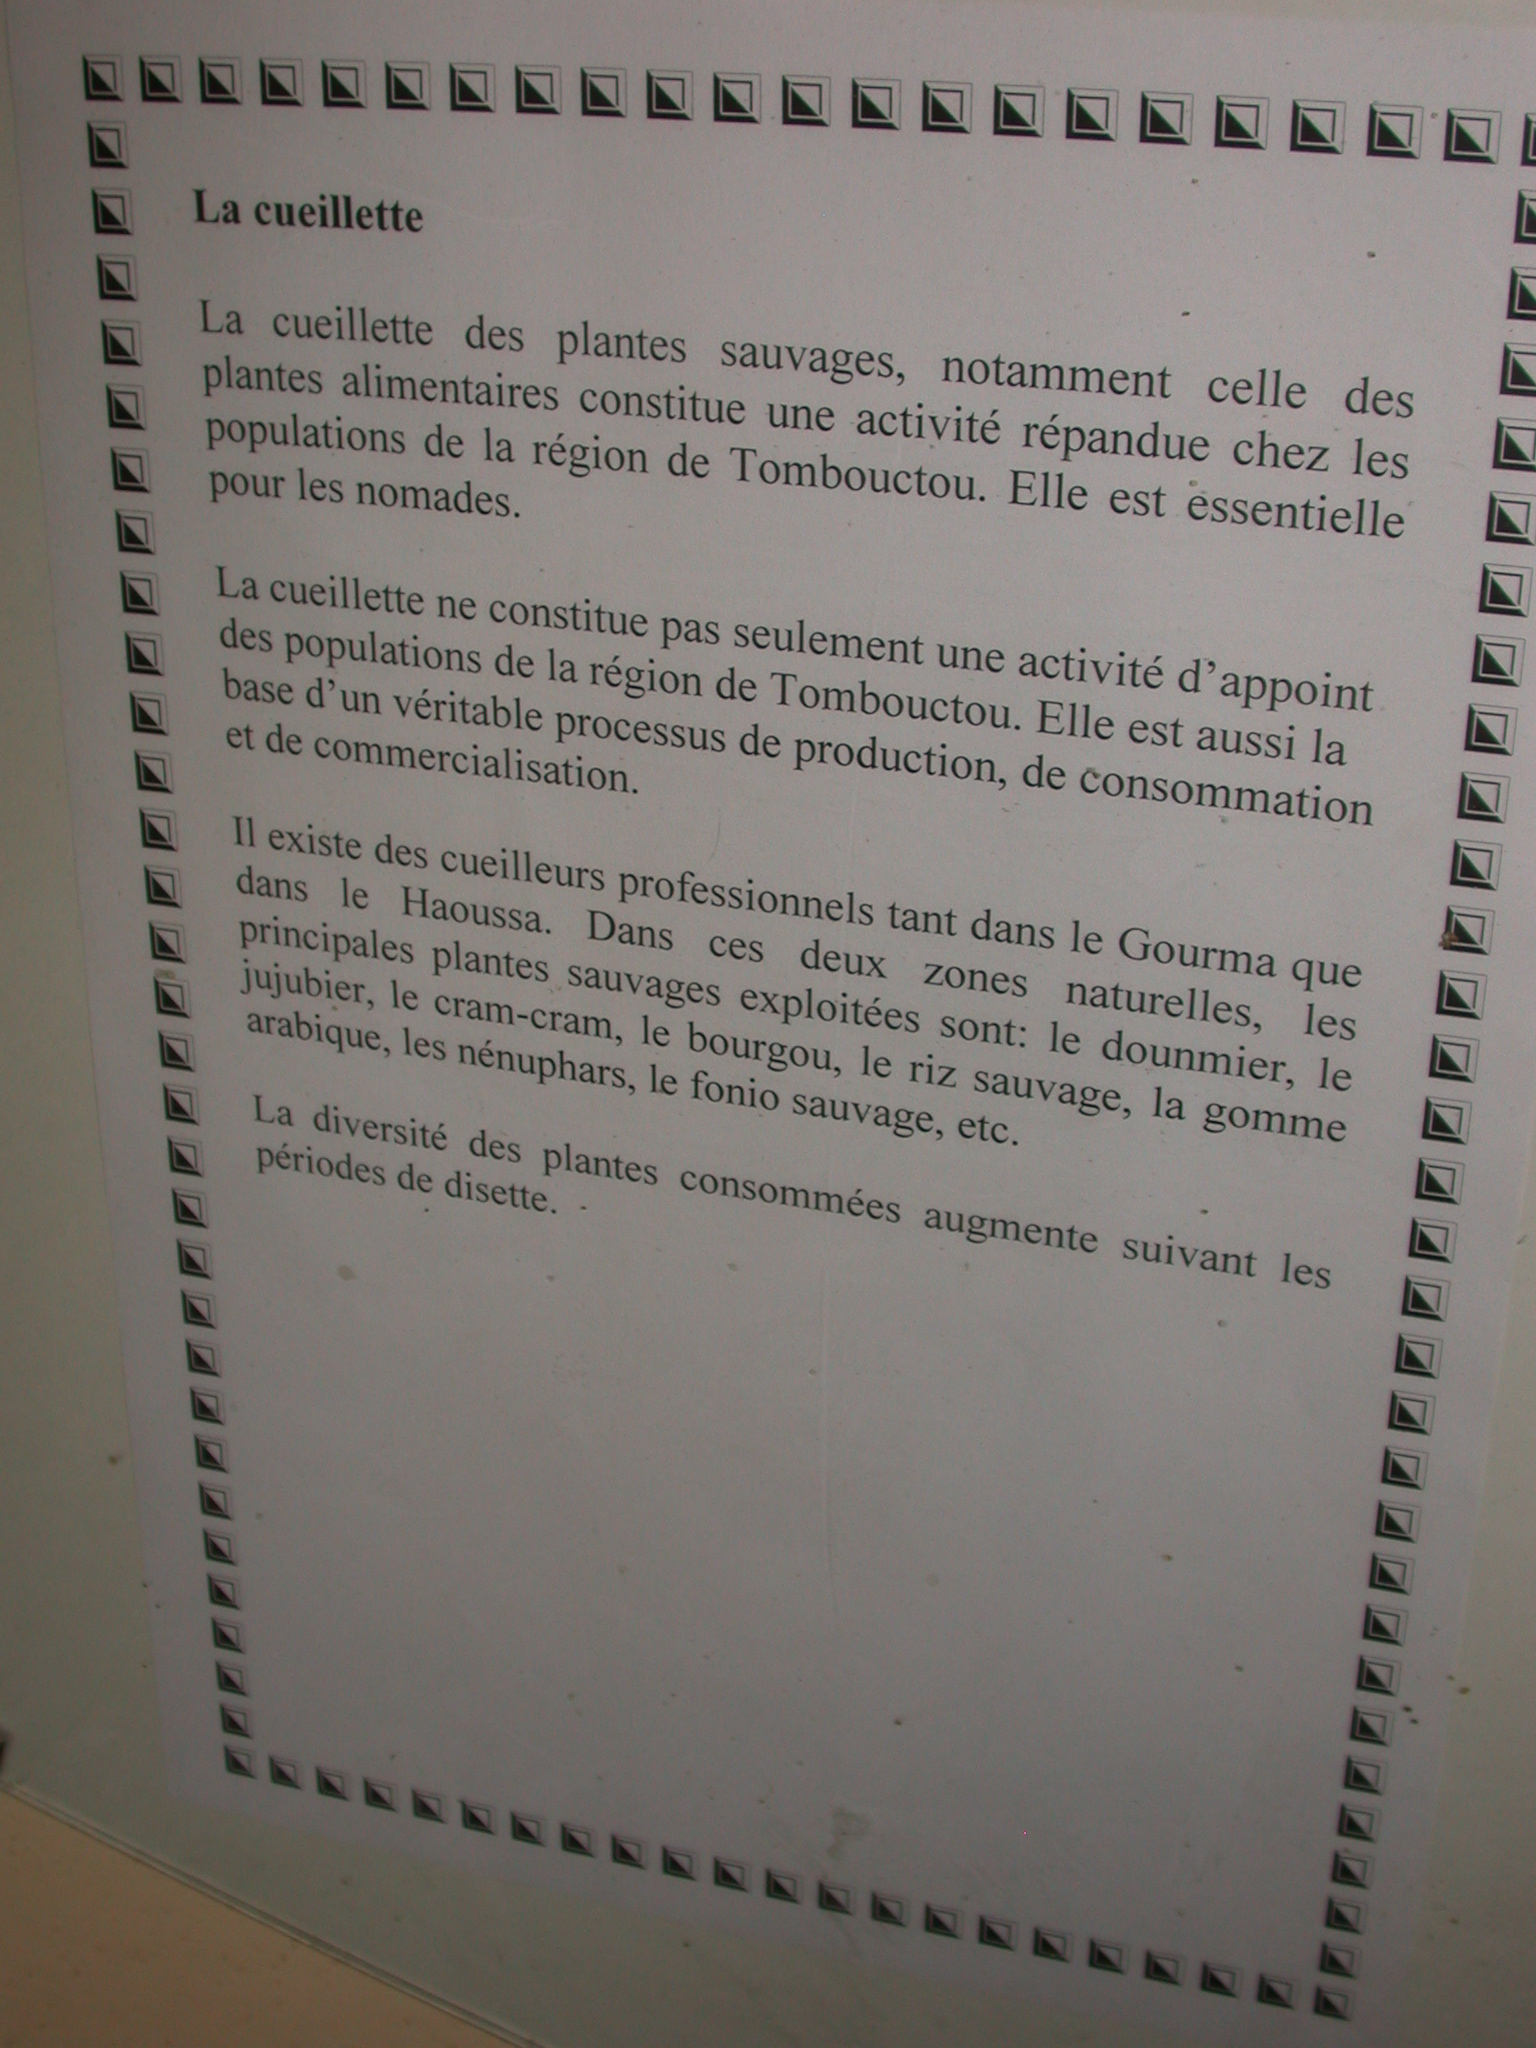 Description of Gathering Wild Plants, Timbuktu Ethnological Museum, Timbuktu, Mali